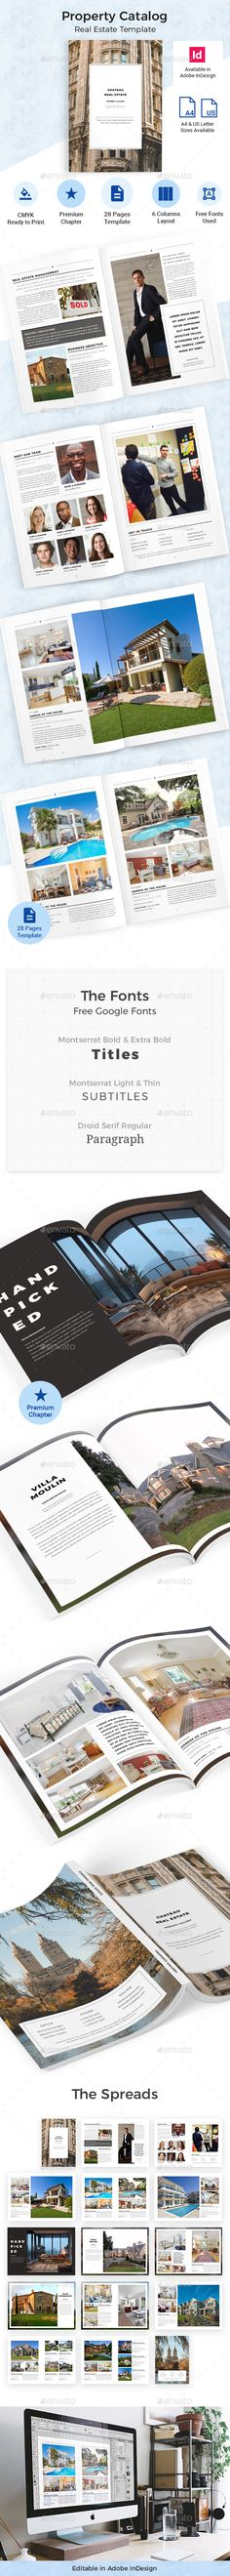 Photoshop Brochure Template for Hotel 52 Pages \ Covers Pages - hotel brochure template